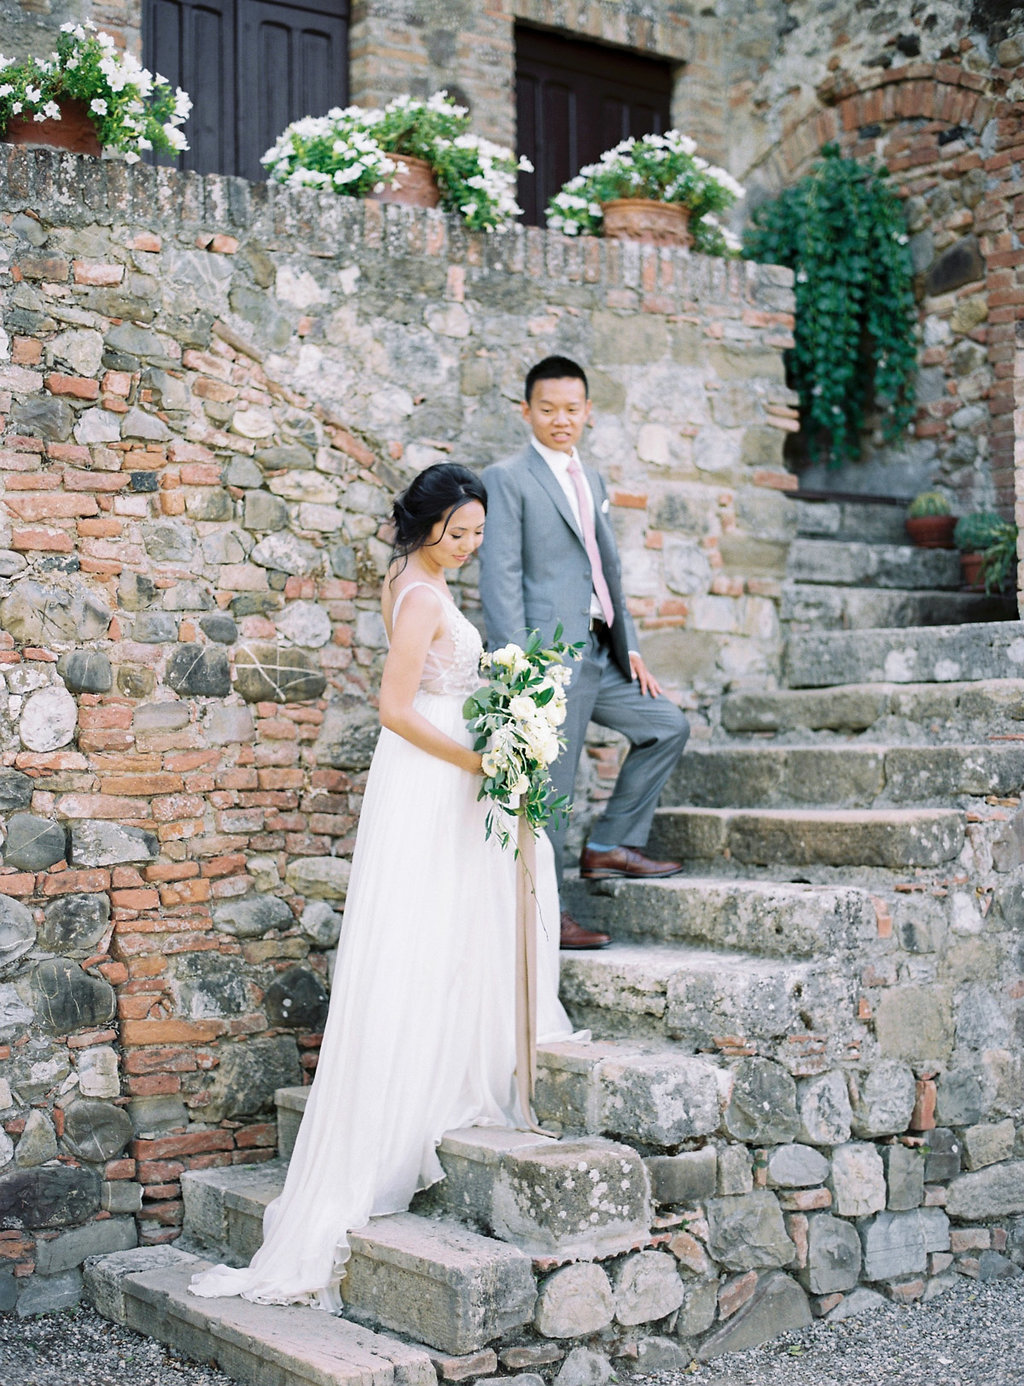 Classically Beautiful + Intimate Wedding in Tuscany - photo by Katie Grant Photography http://ruffledblog.com/classically-beautiful-intimate-wedding-in-tuscany